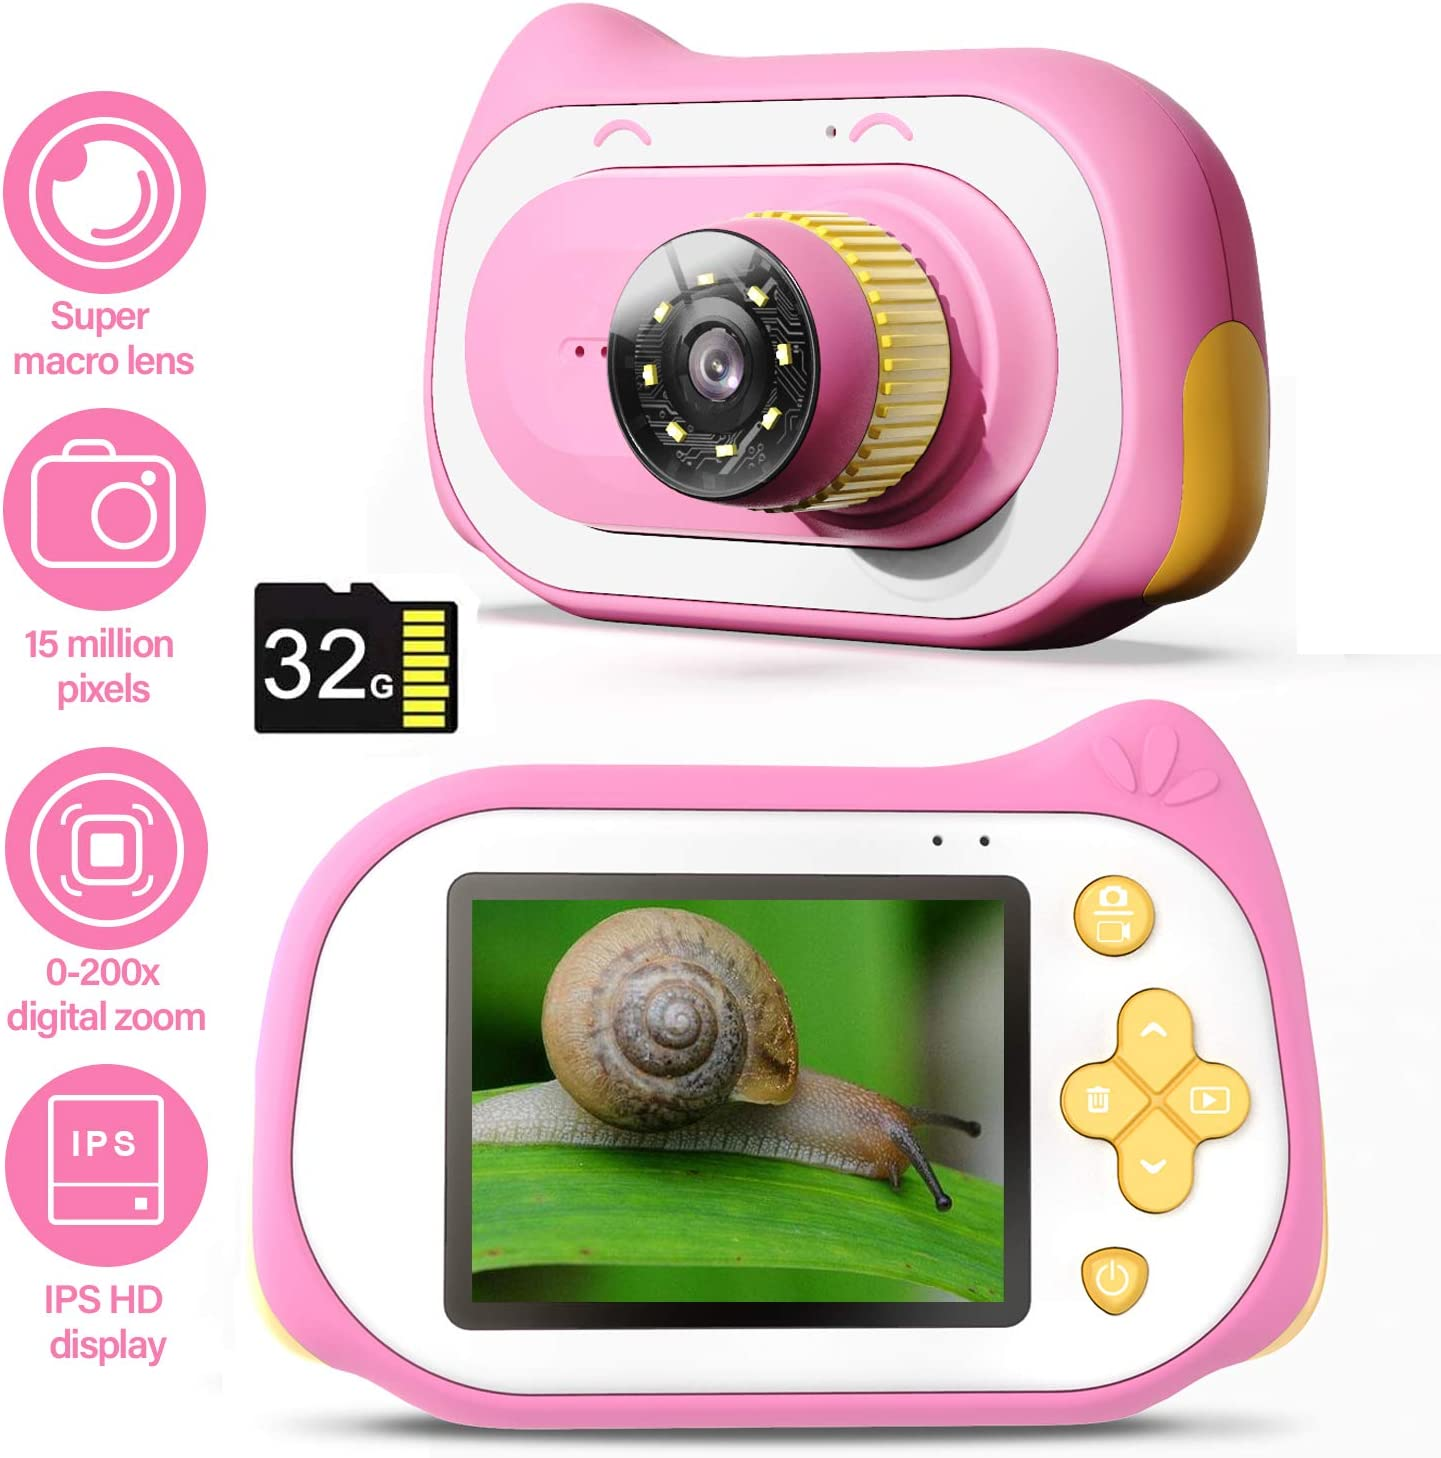 Kids Camera with Microscope Function, 200X Magnifier Digital Microscope 15MP 4K Compact Kids Starter Camera Mini Video Player Recorder with Free 32GB TF Card Toy & Gift for 3-10 Years Old Boys Girls